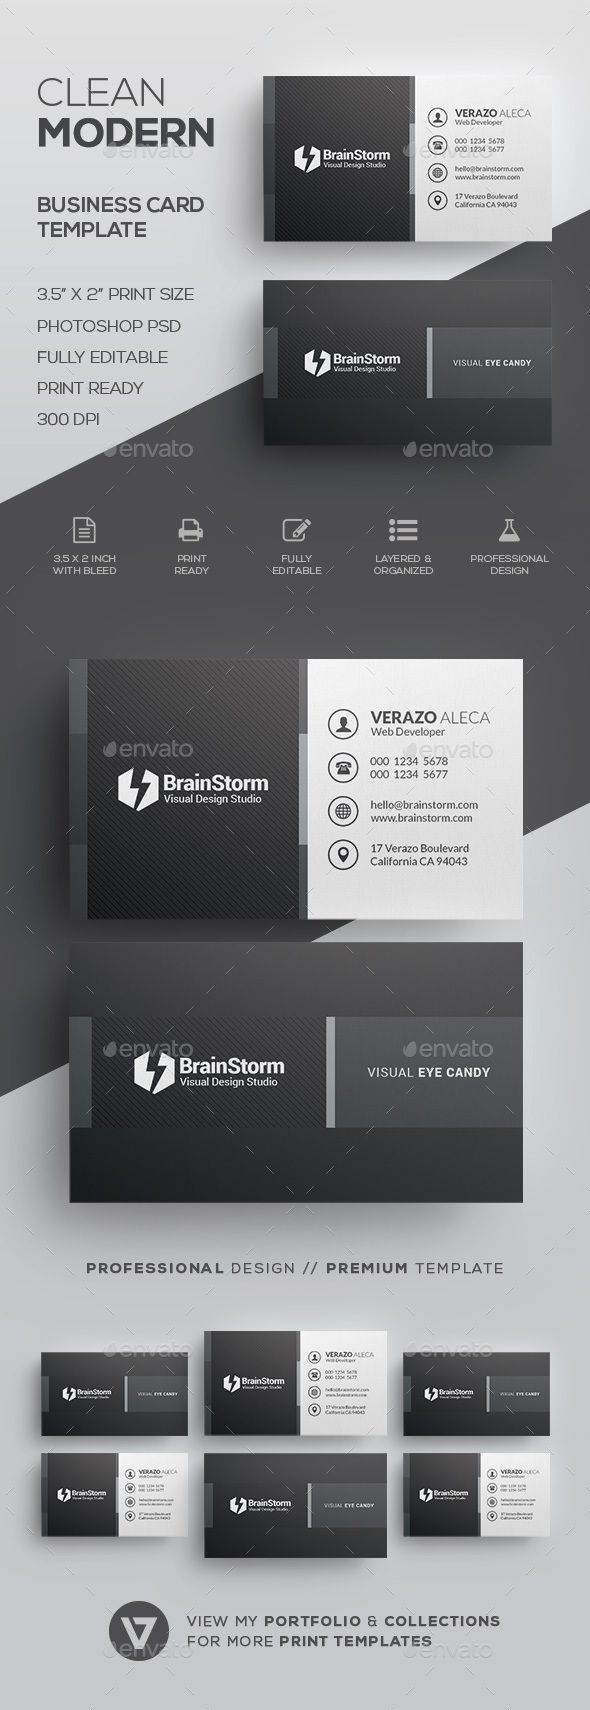 Pin by sadli affandi on card brochure cataloq pinterest elegant business card template by verazo need more high quality business card view my business card templates collection or save money reheart Gallery